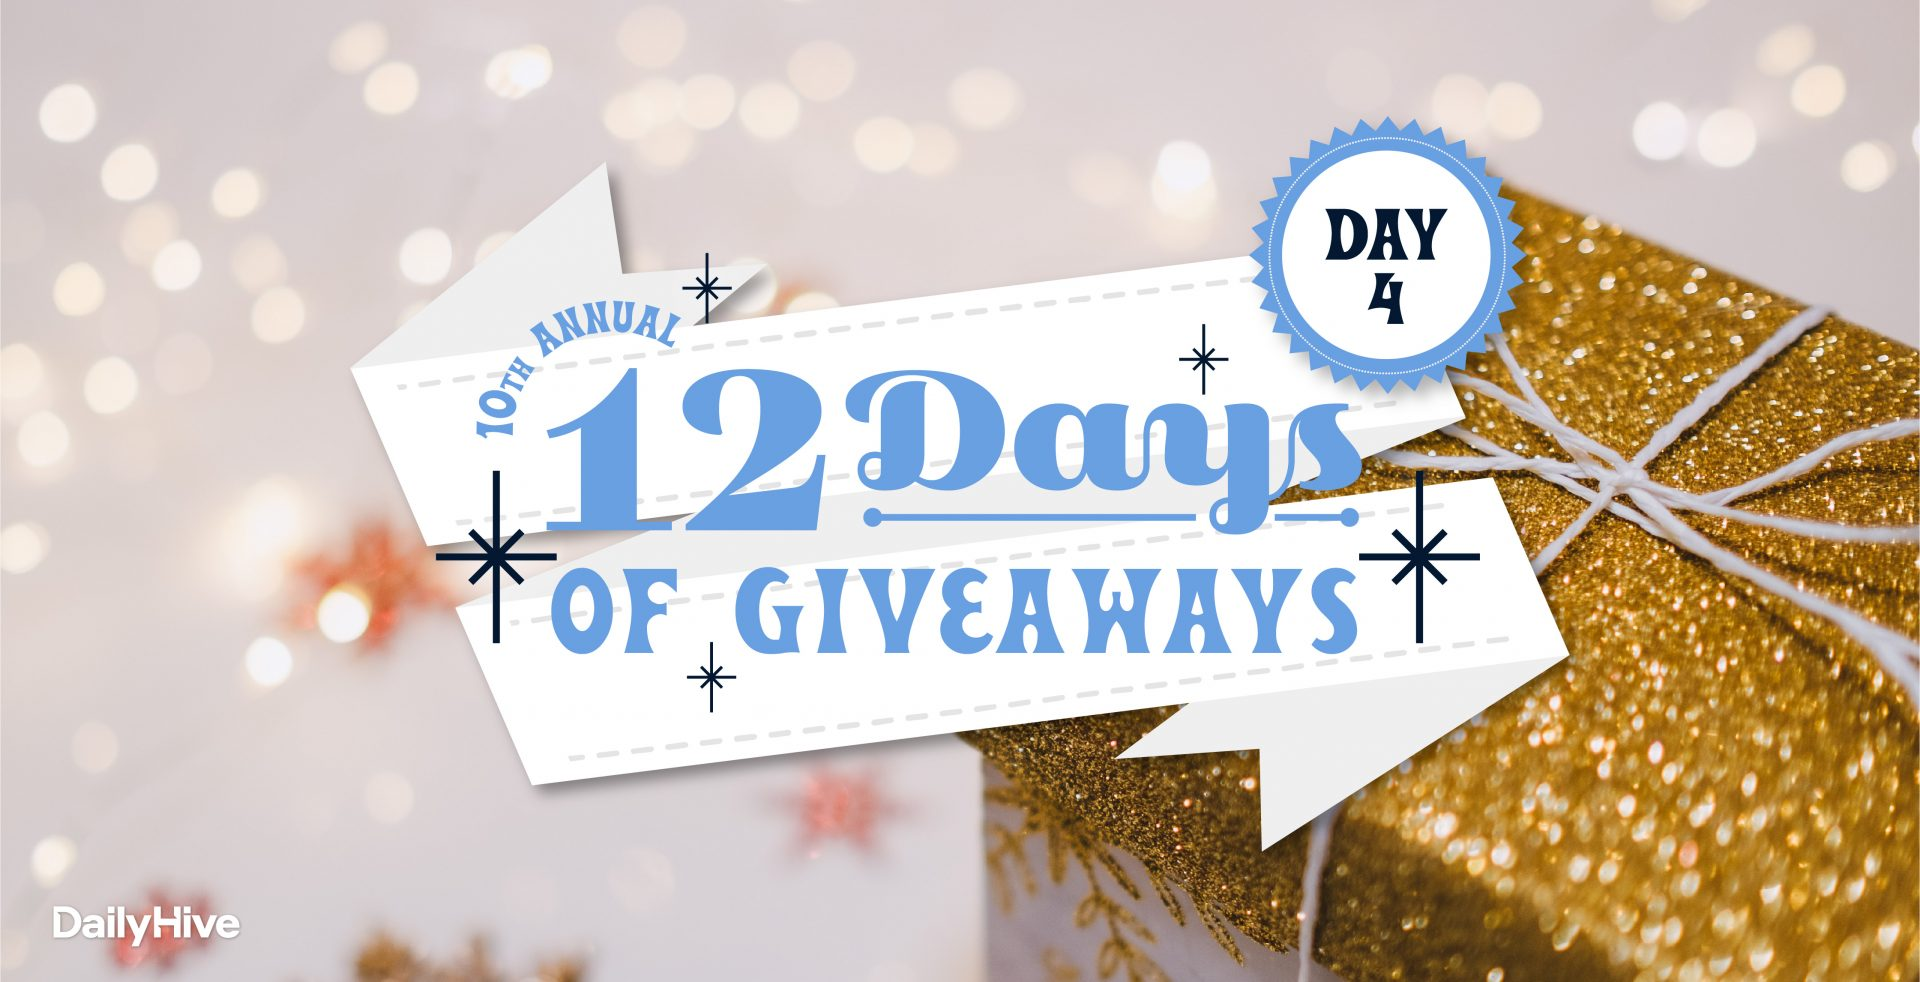 12 Days of Giveaways: Cook like the pros with a Kilne Cookware six-piece knife set